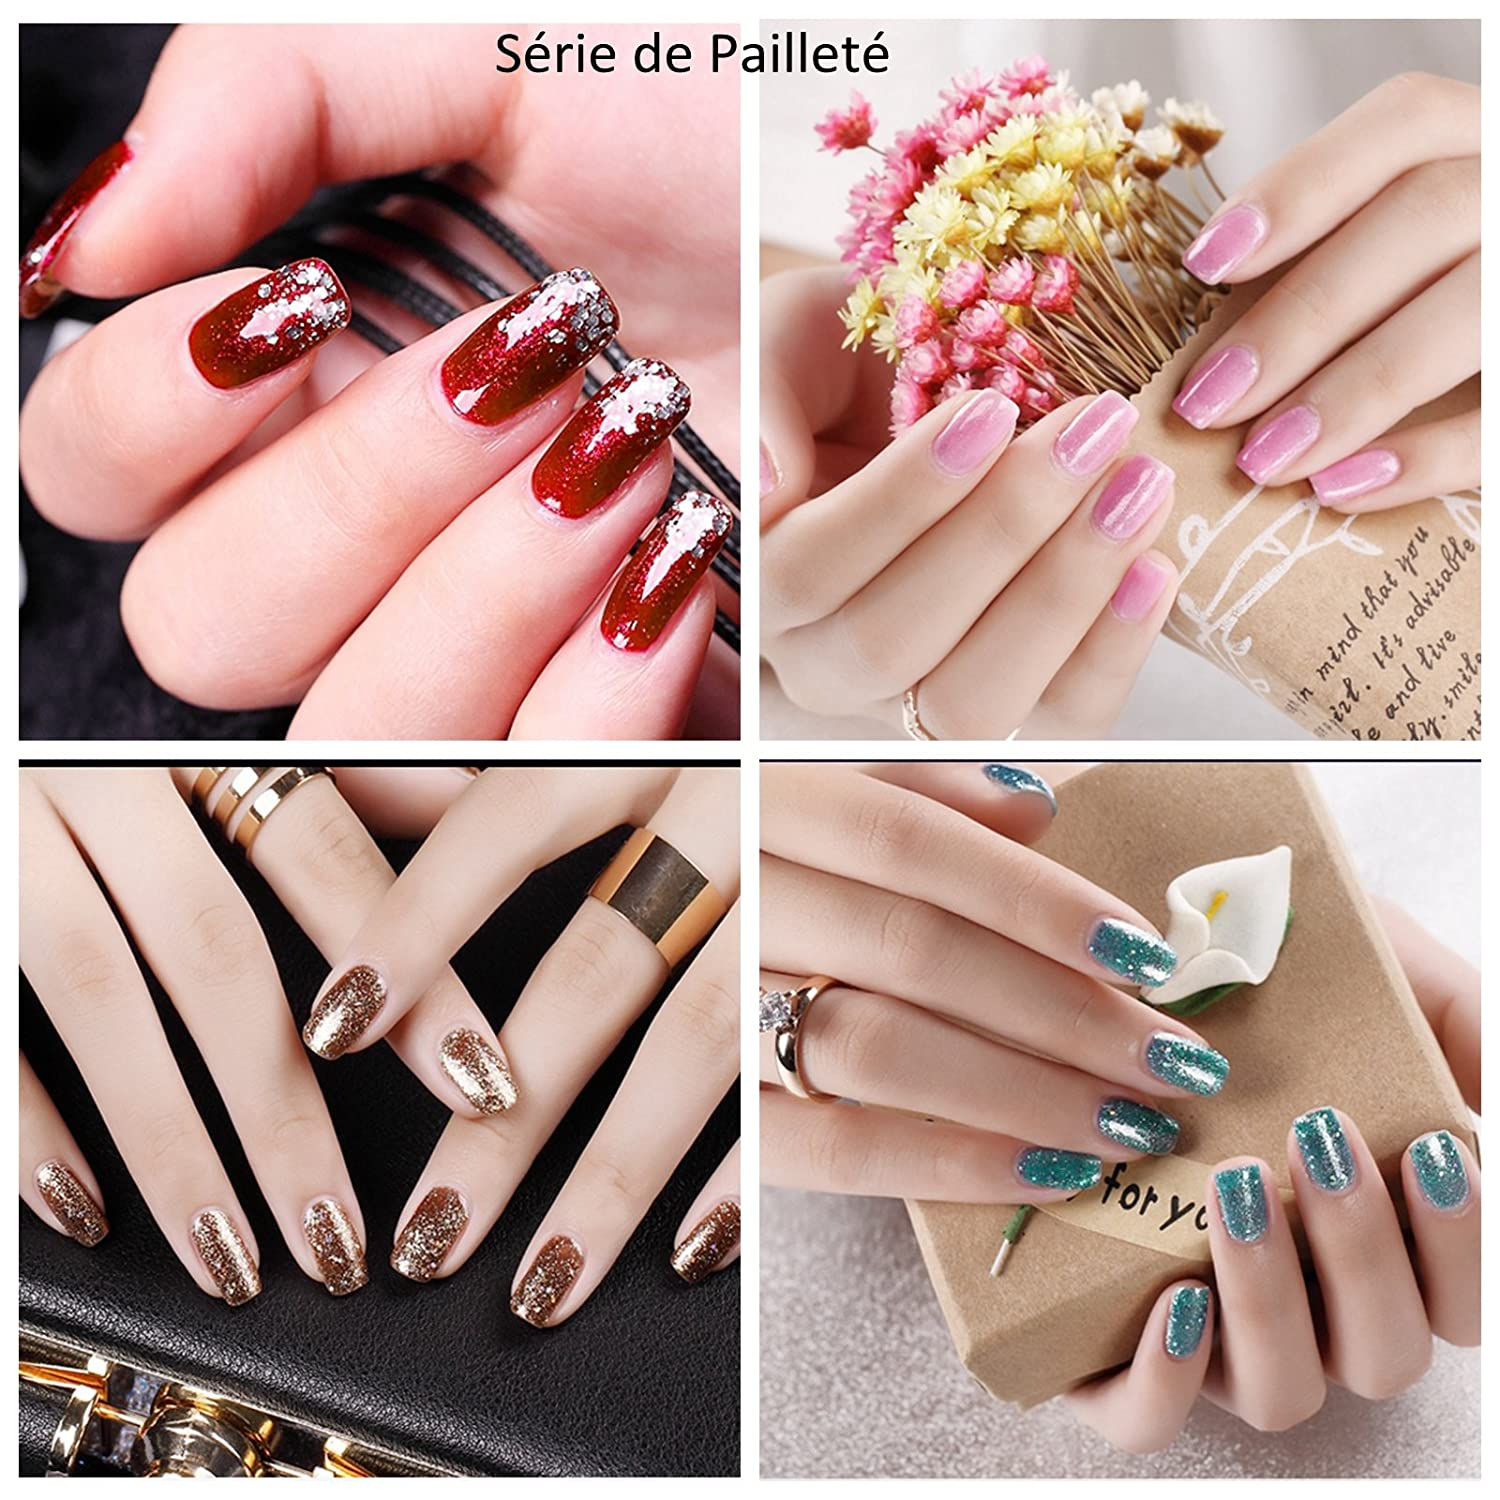 Perfect Summer - Lote de esmalte de uñas de gel semipermanente, Soak Off UV LED Gel Nail para manicura: Amazon.es: Belleza